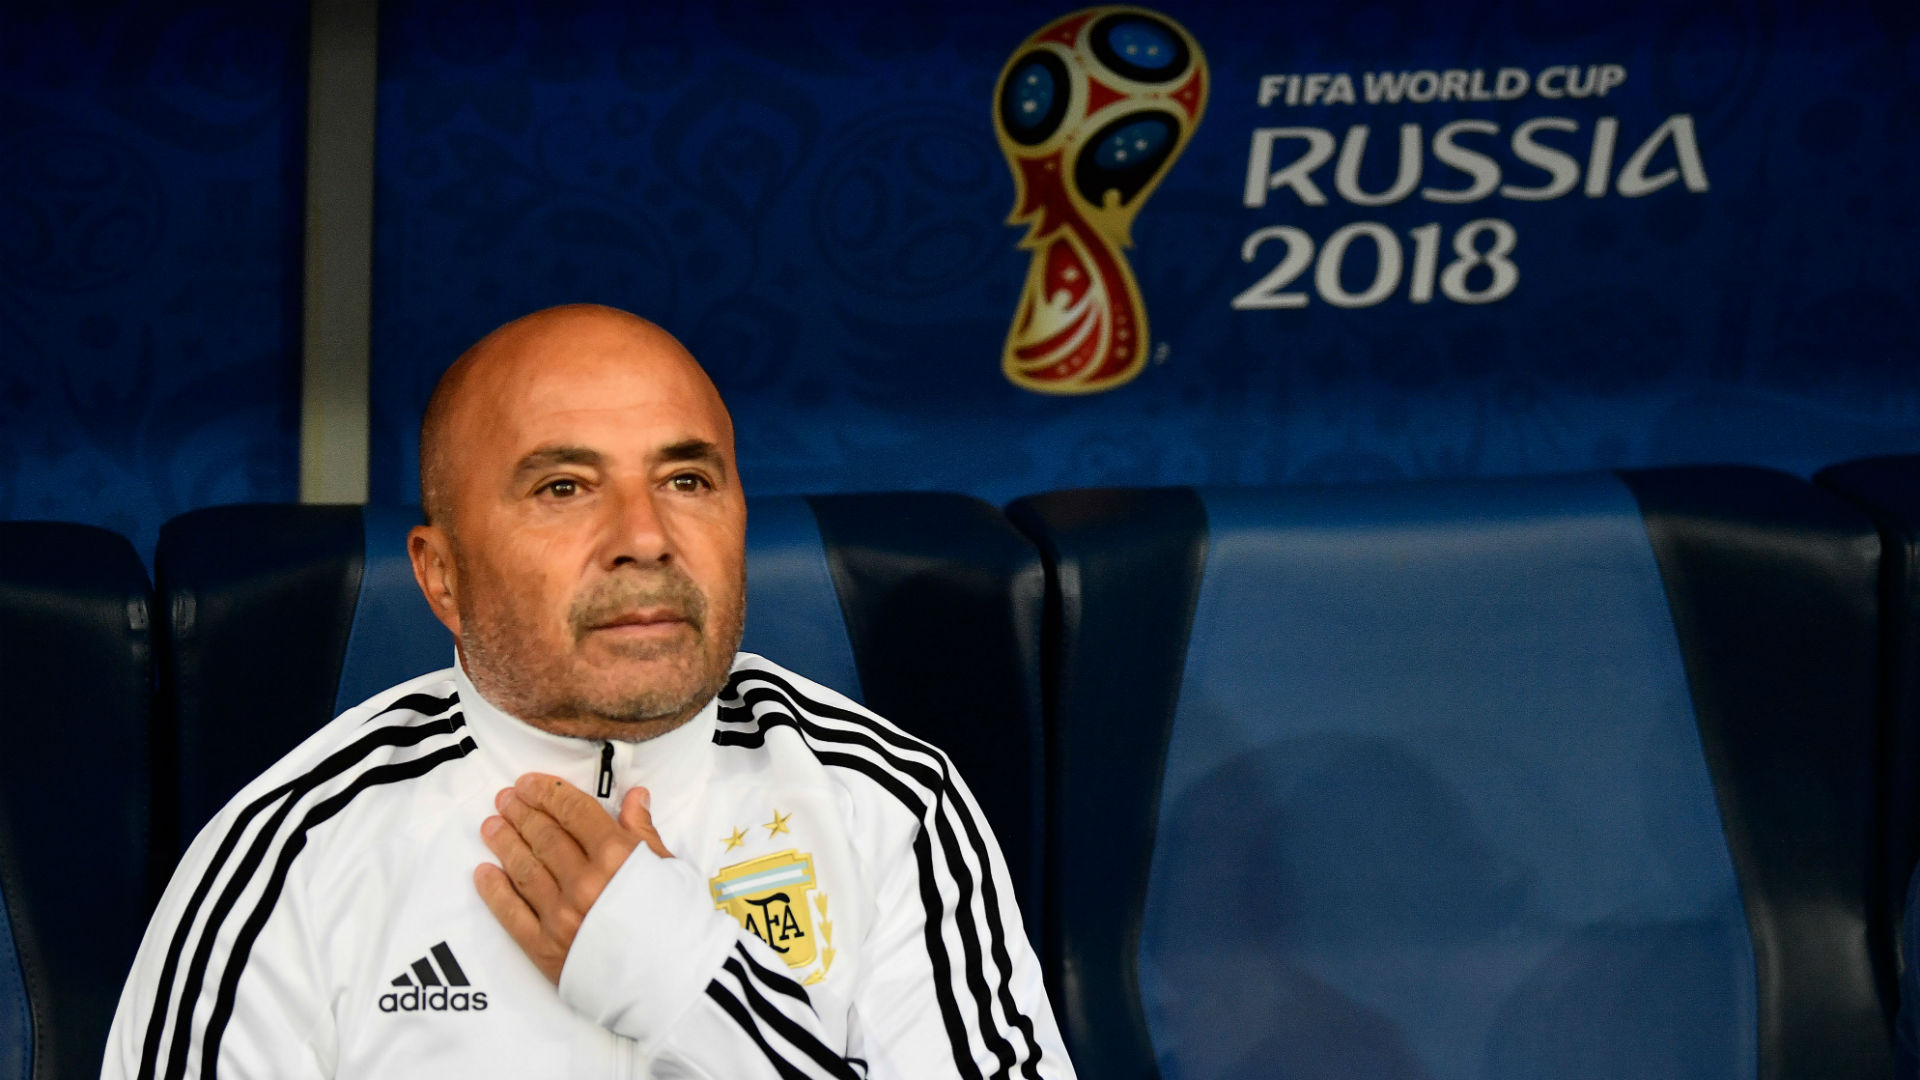 https://images.performgroup.com/di/library/GOAL/de/a2/sampaoli-argentina-nigeria-world-cup-russi-2018-26062018_1k3a9q6ft3kja147yr6p3g21qs.jpg